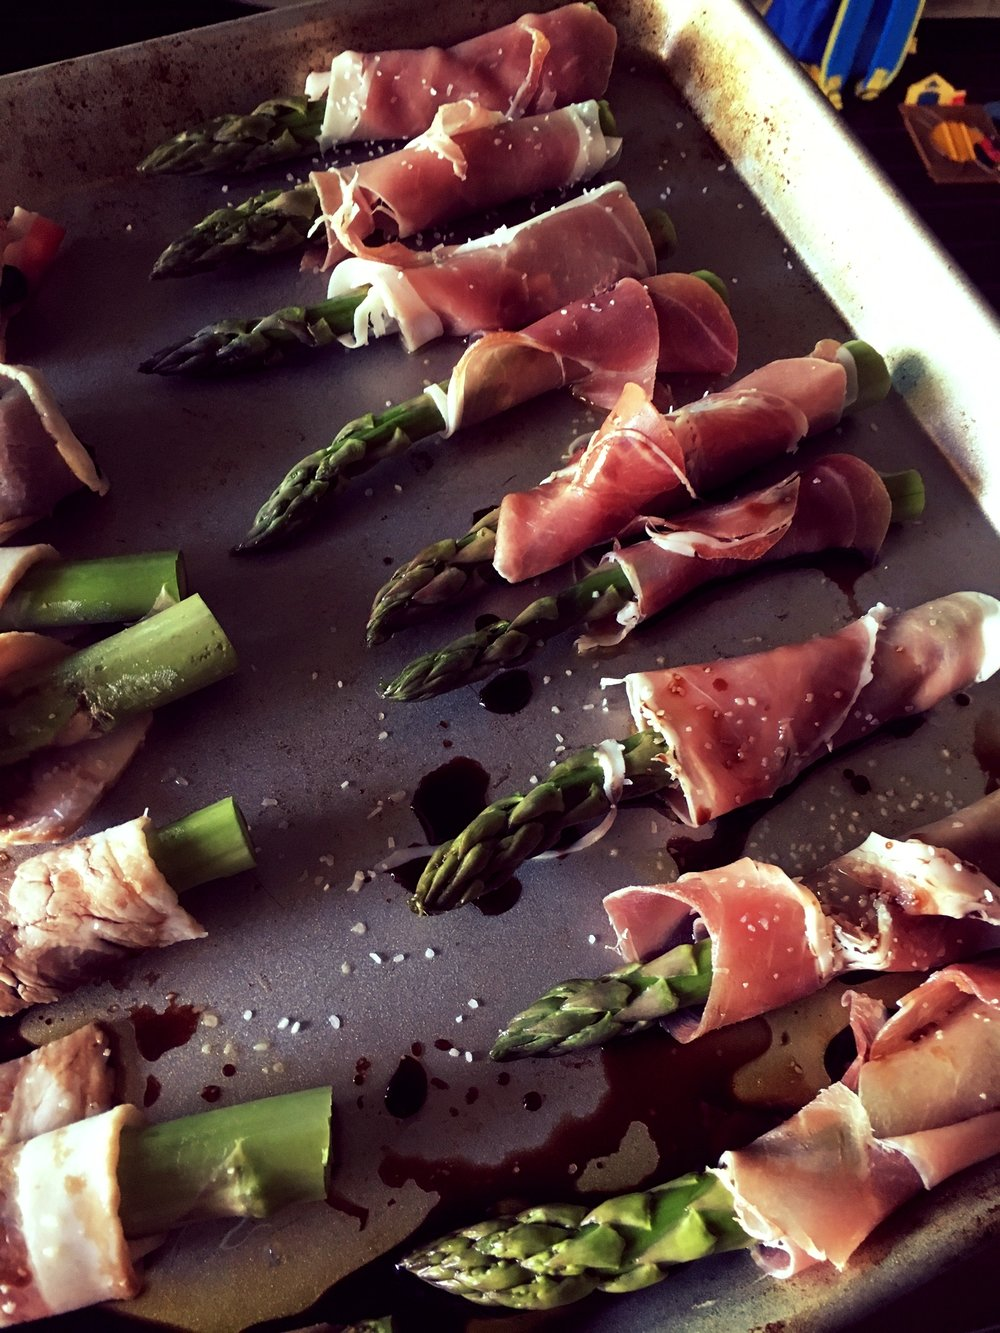 Our prosciutto-wrapped asparagus from Christmas.